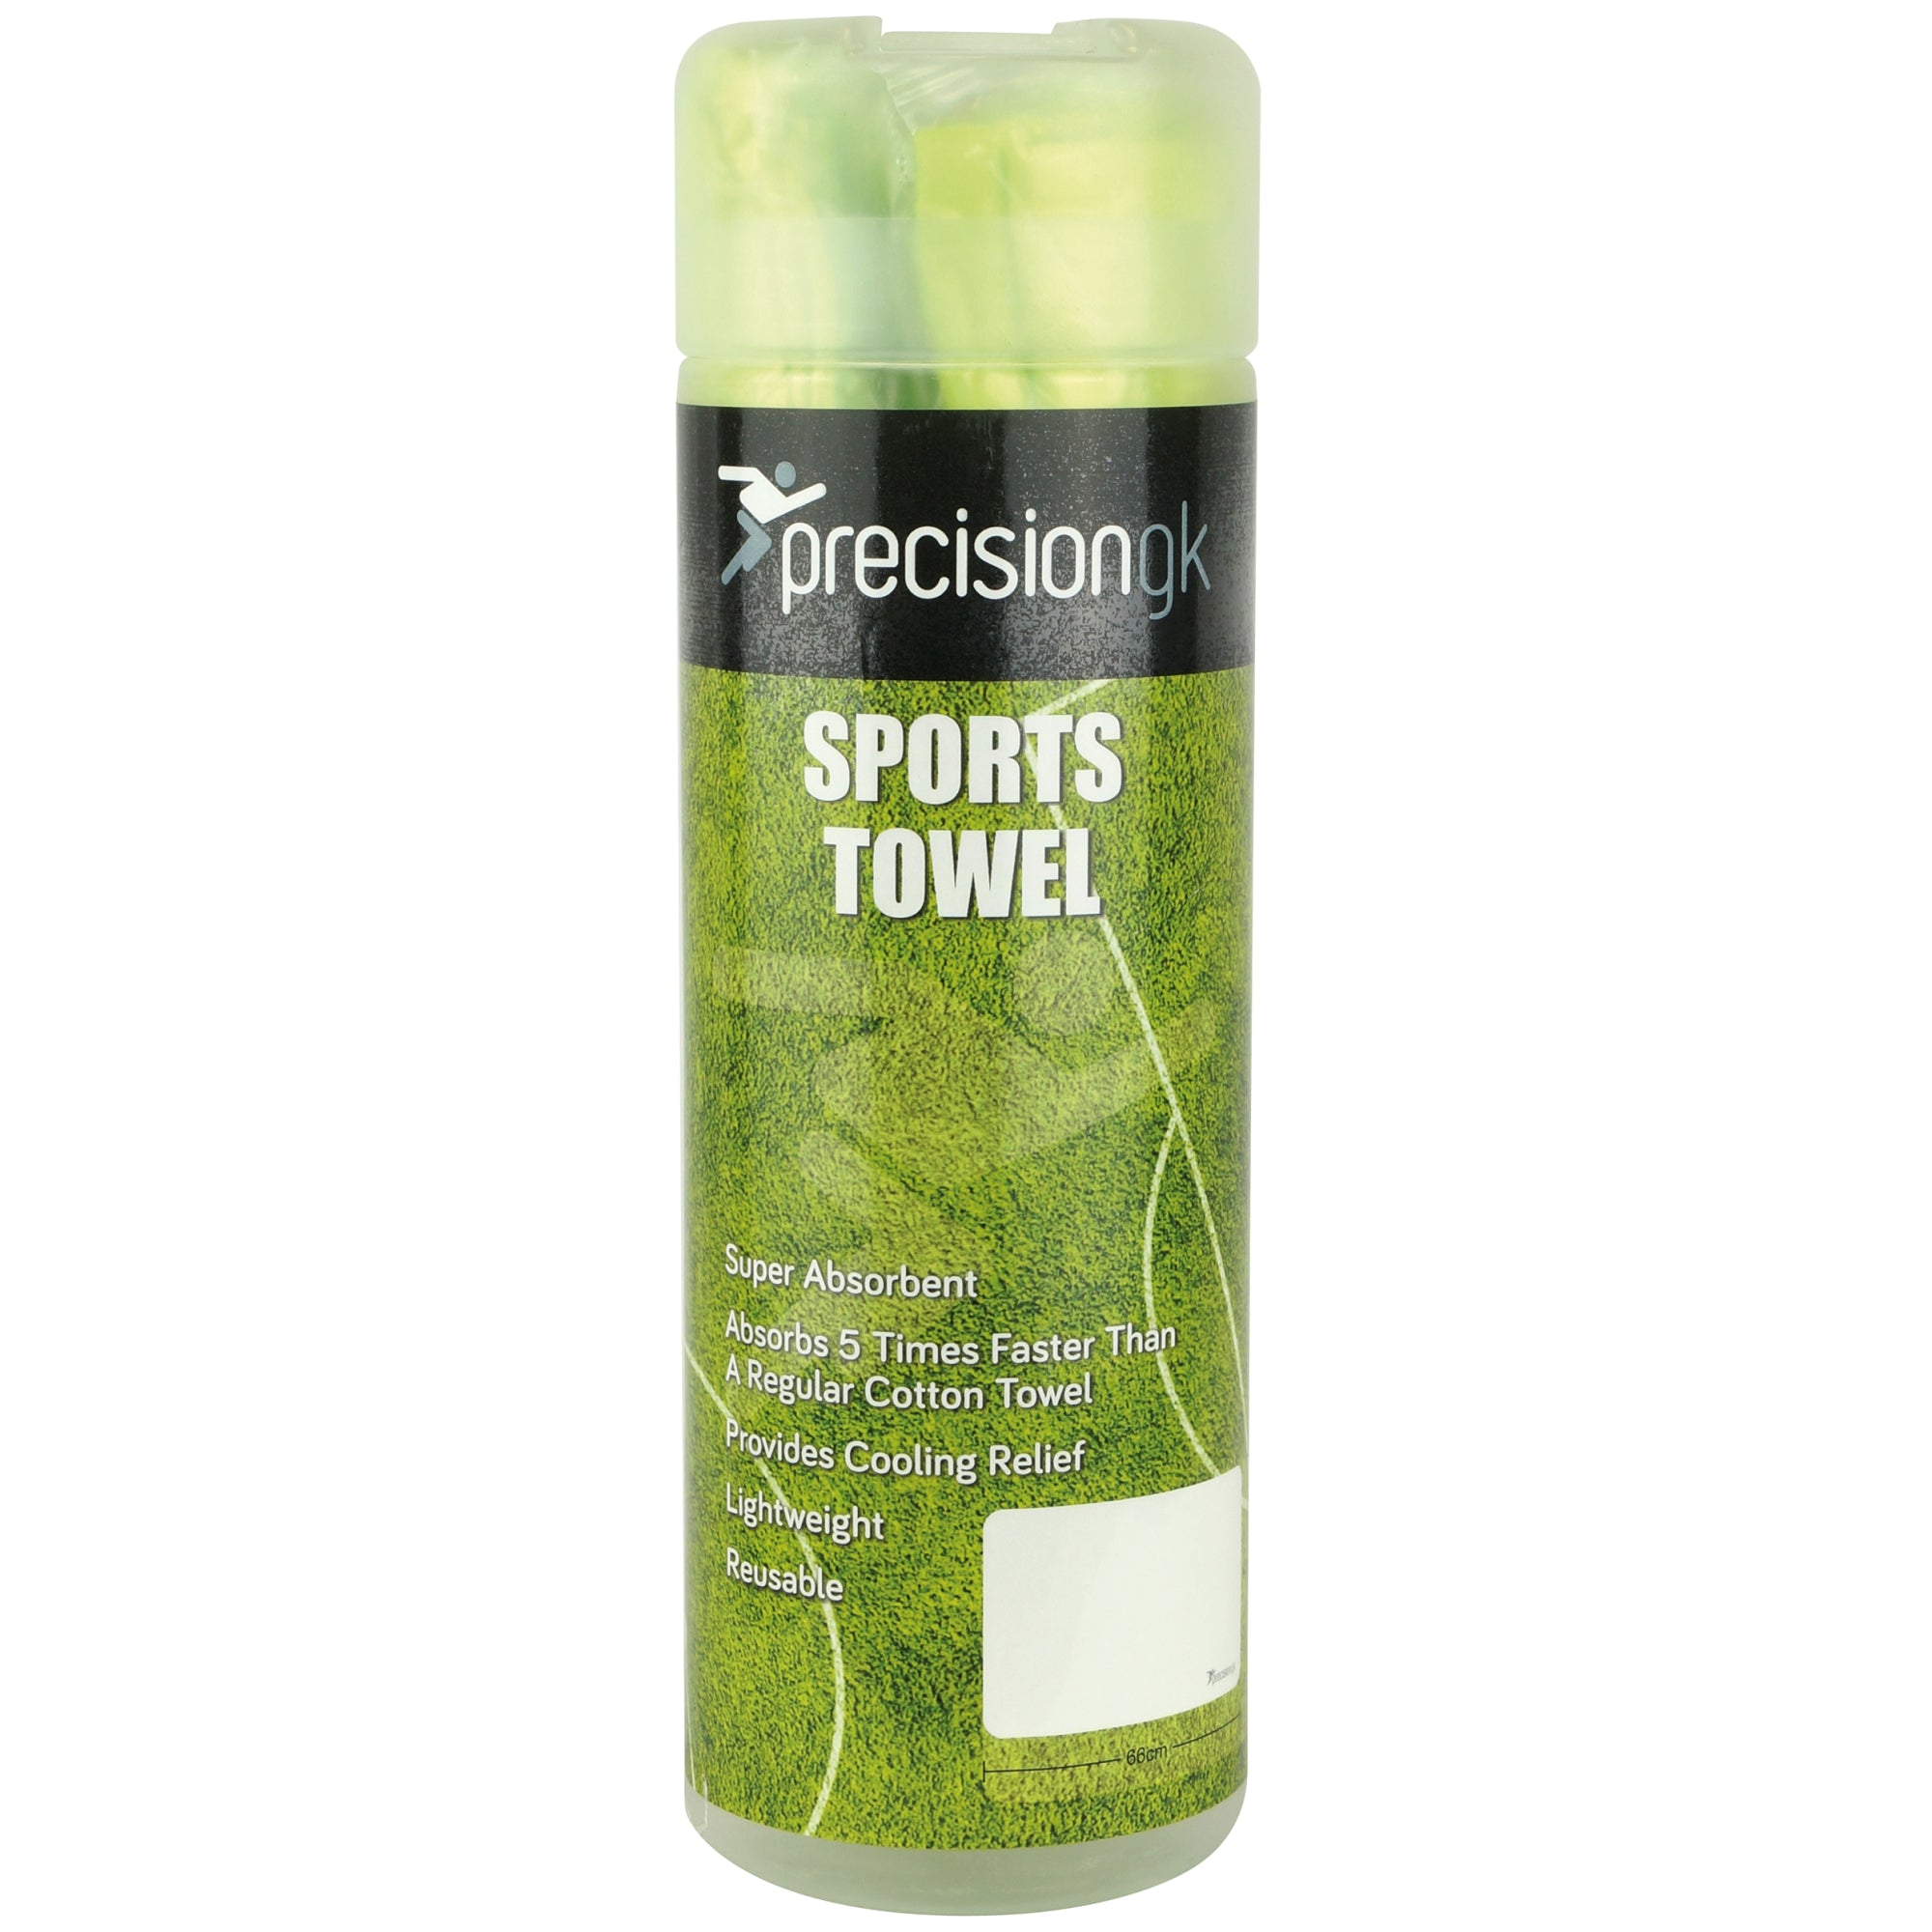 Precision GK Sports Towel - Green